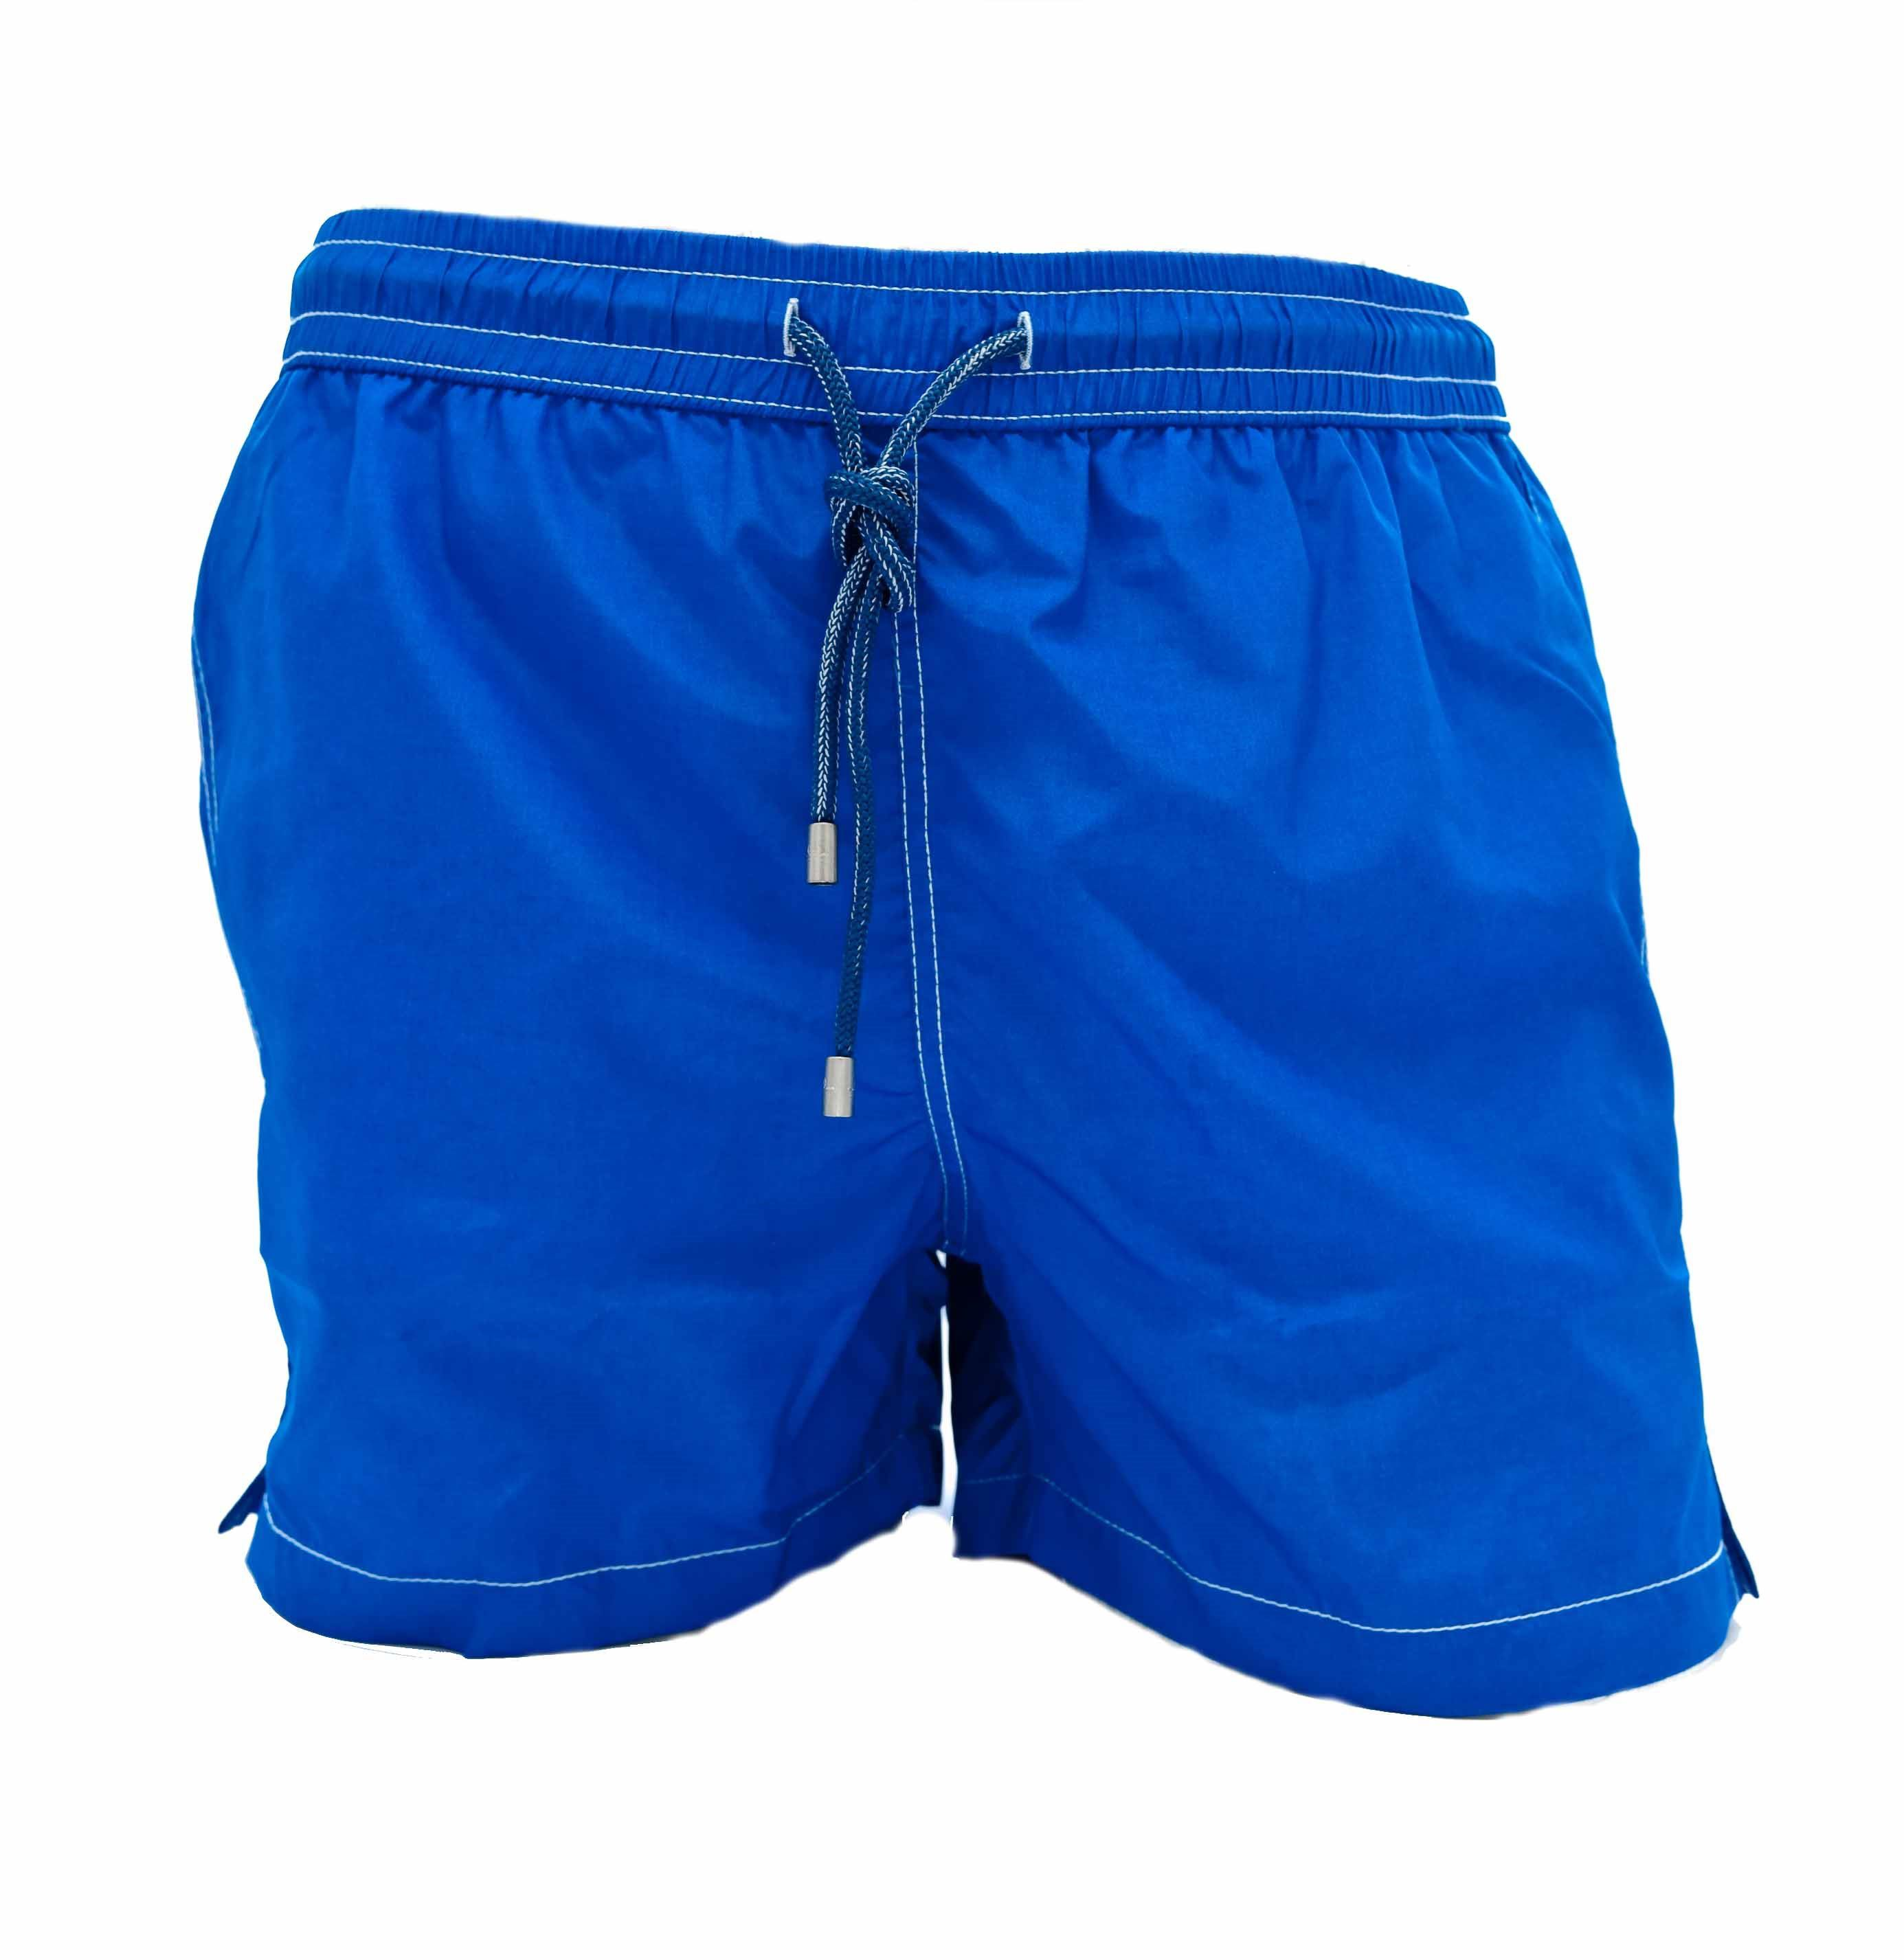 Picture of boxer swimming trunks with blue background